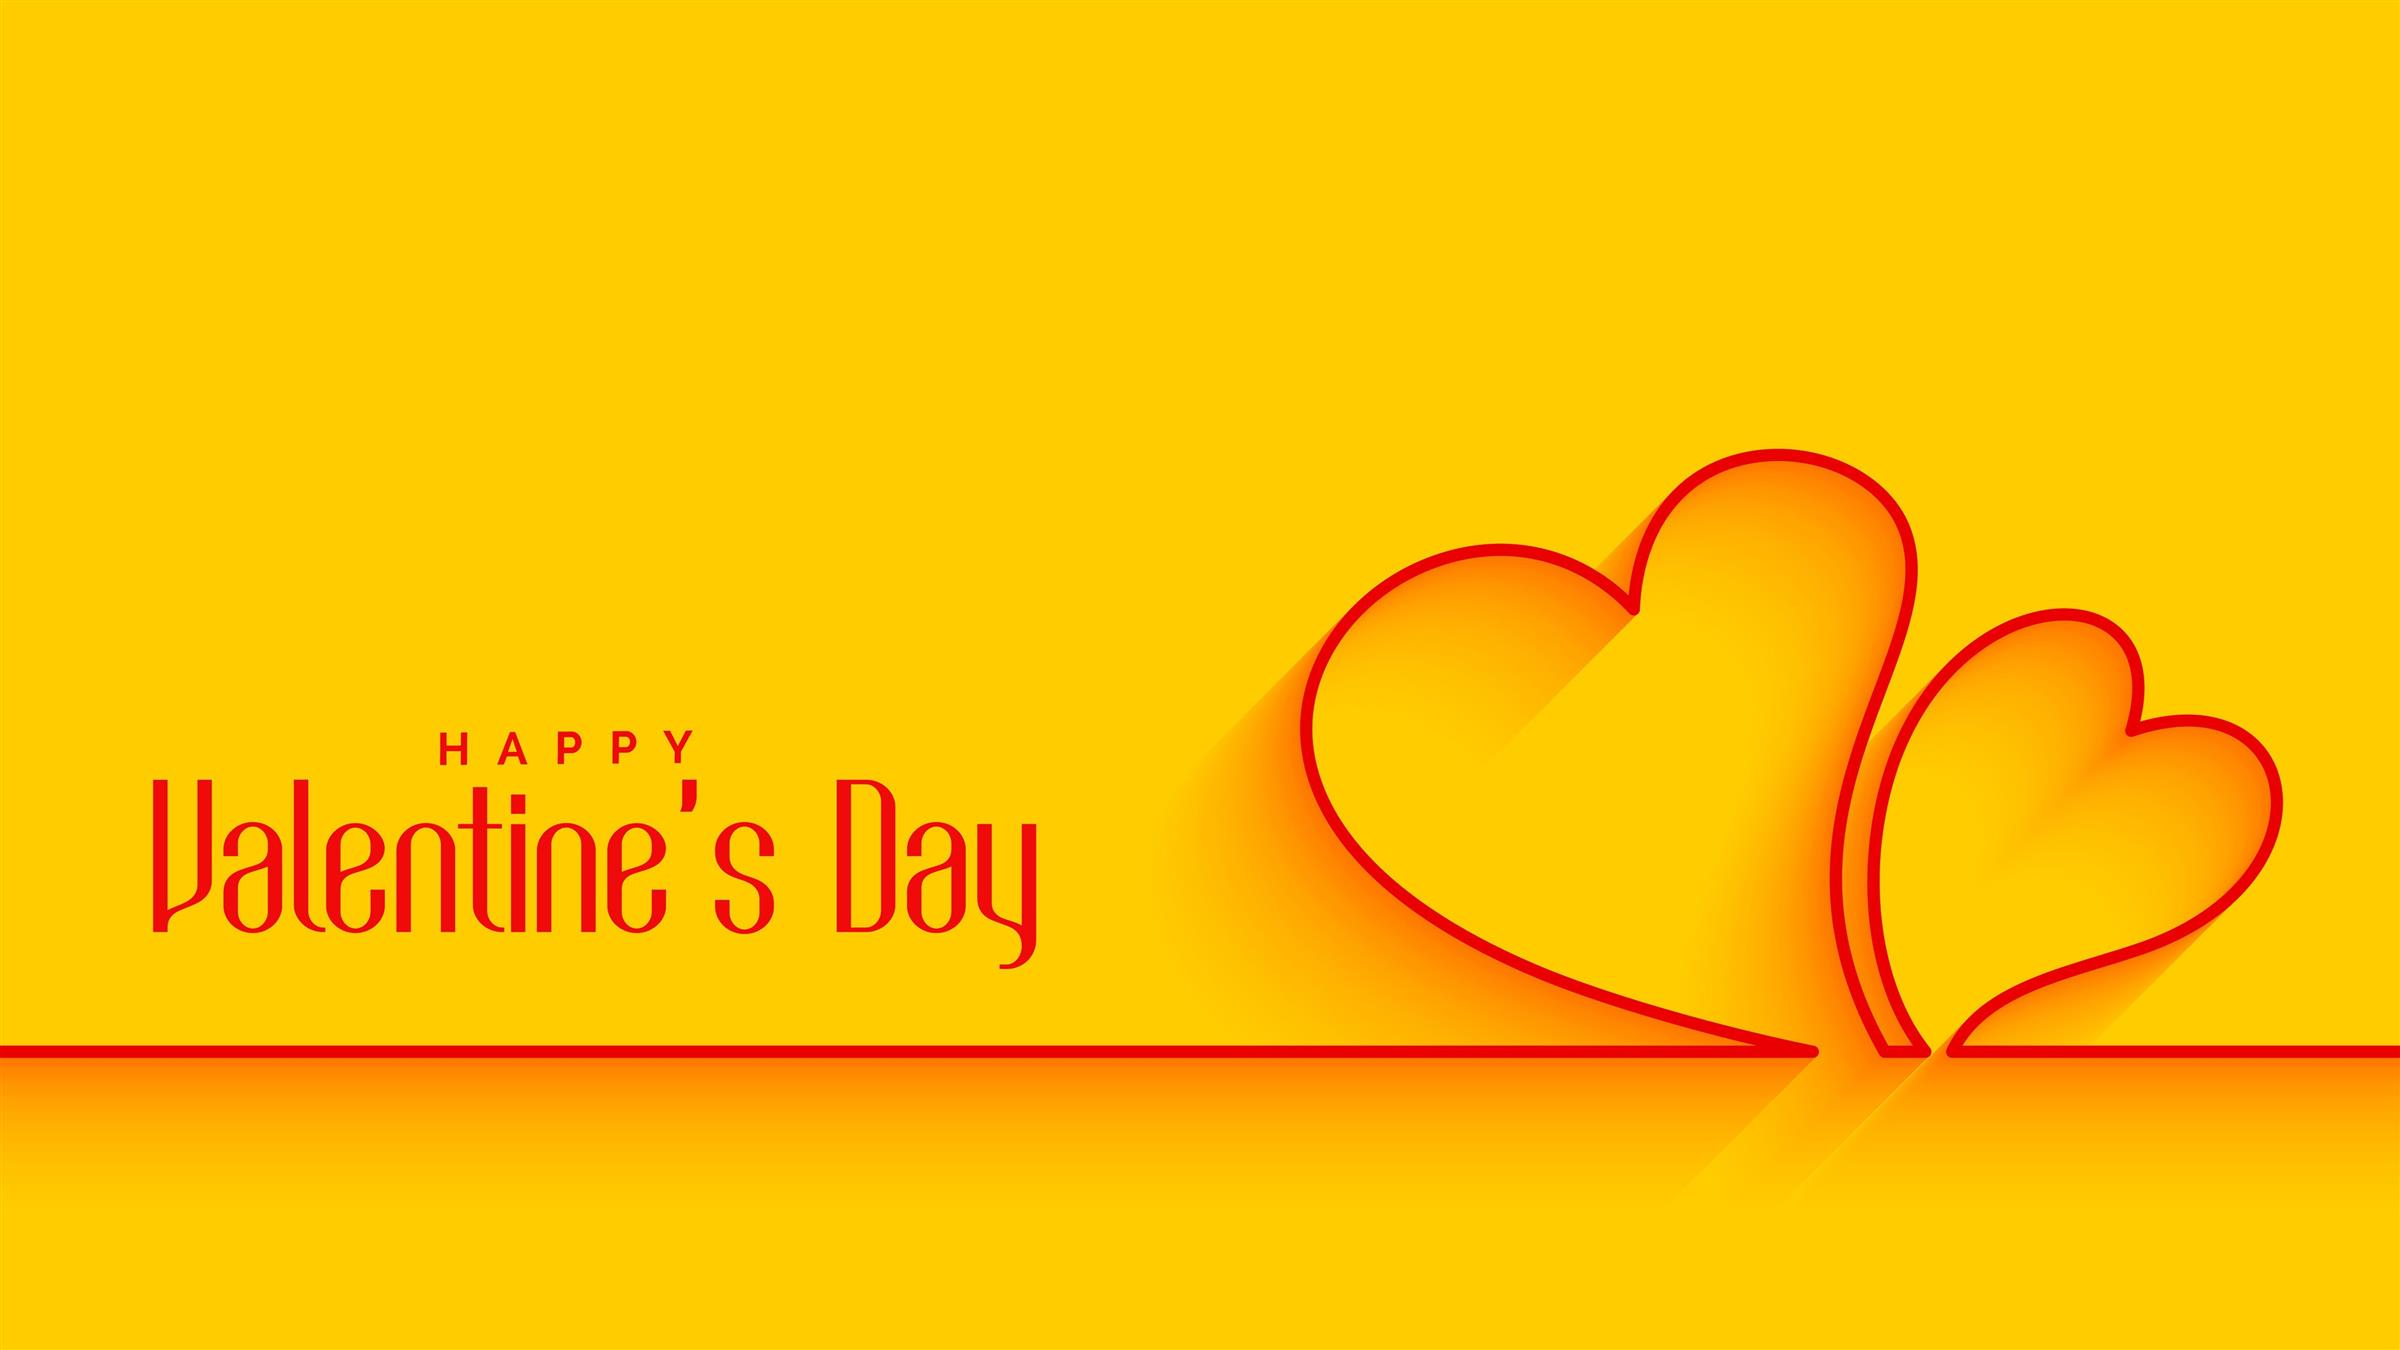 2400x1350 Valentines Day 5K Yellow Wallpaper